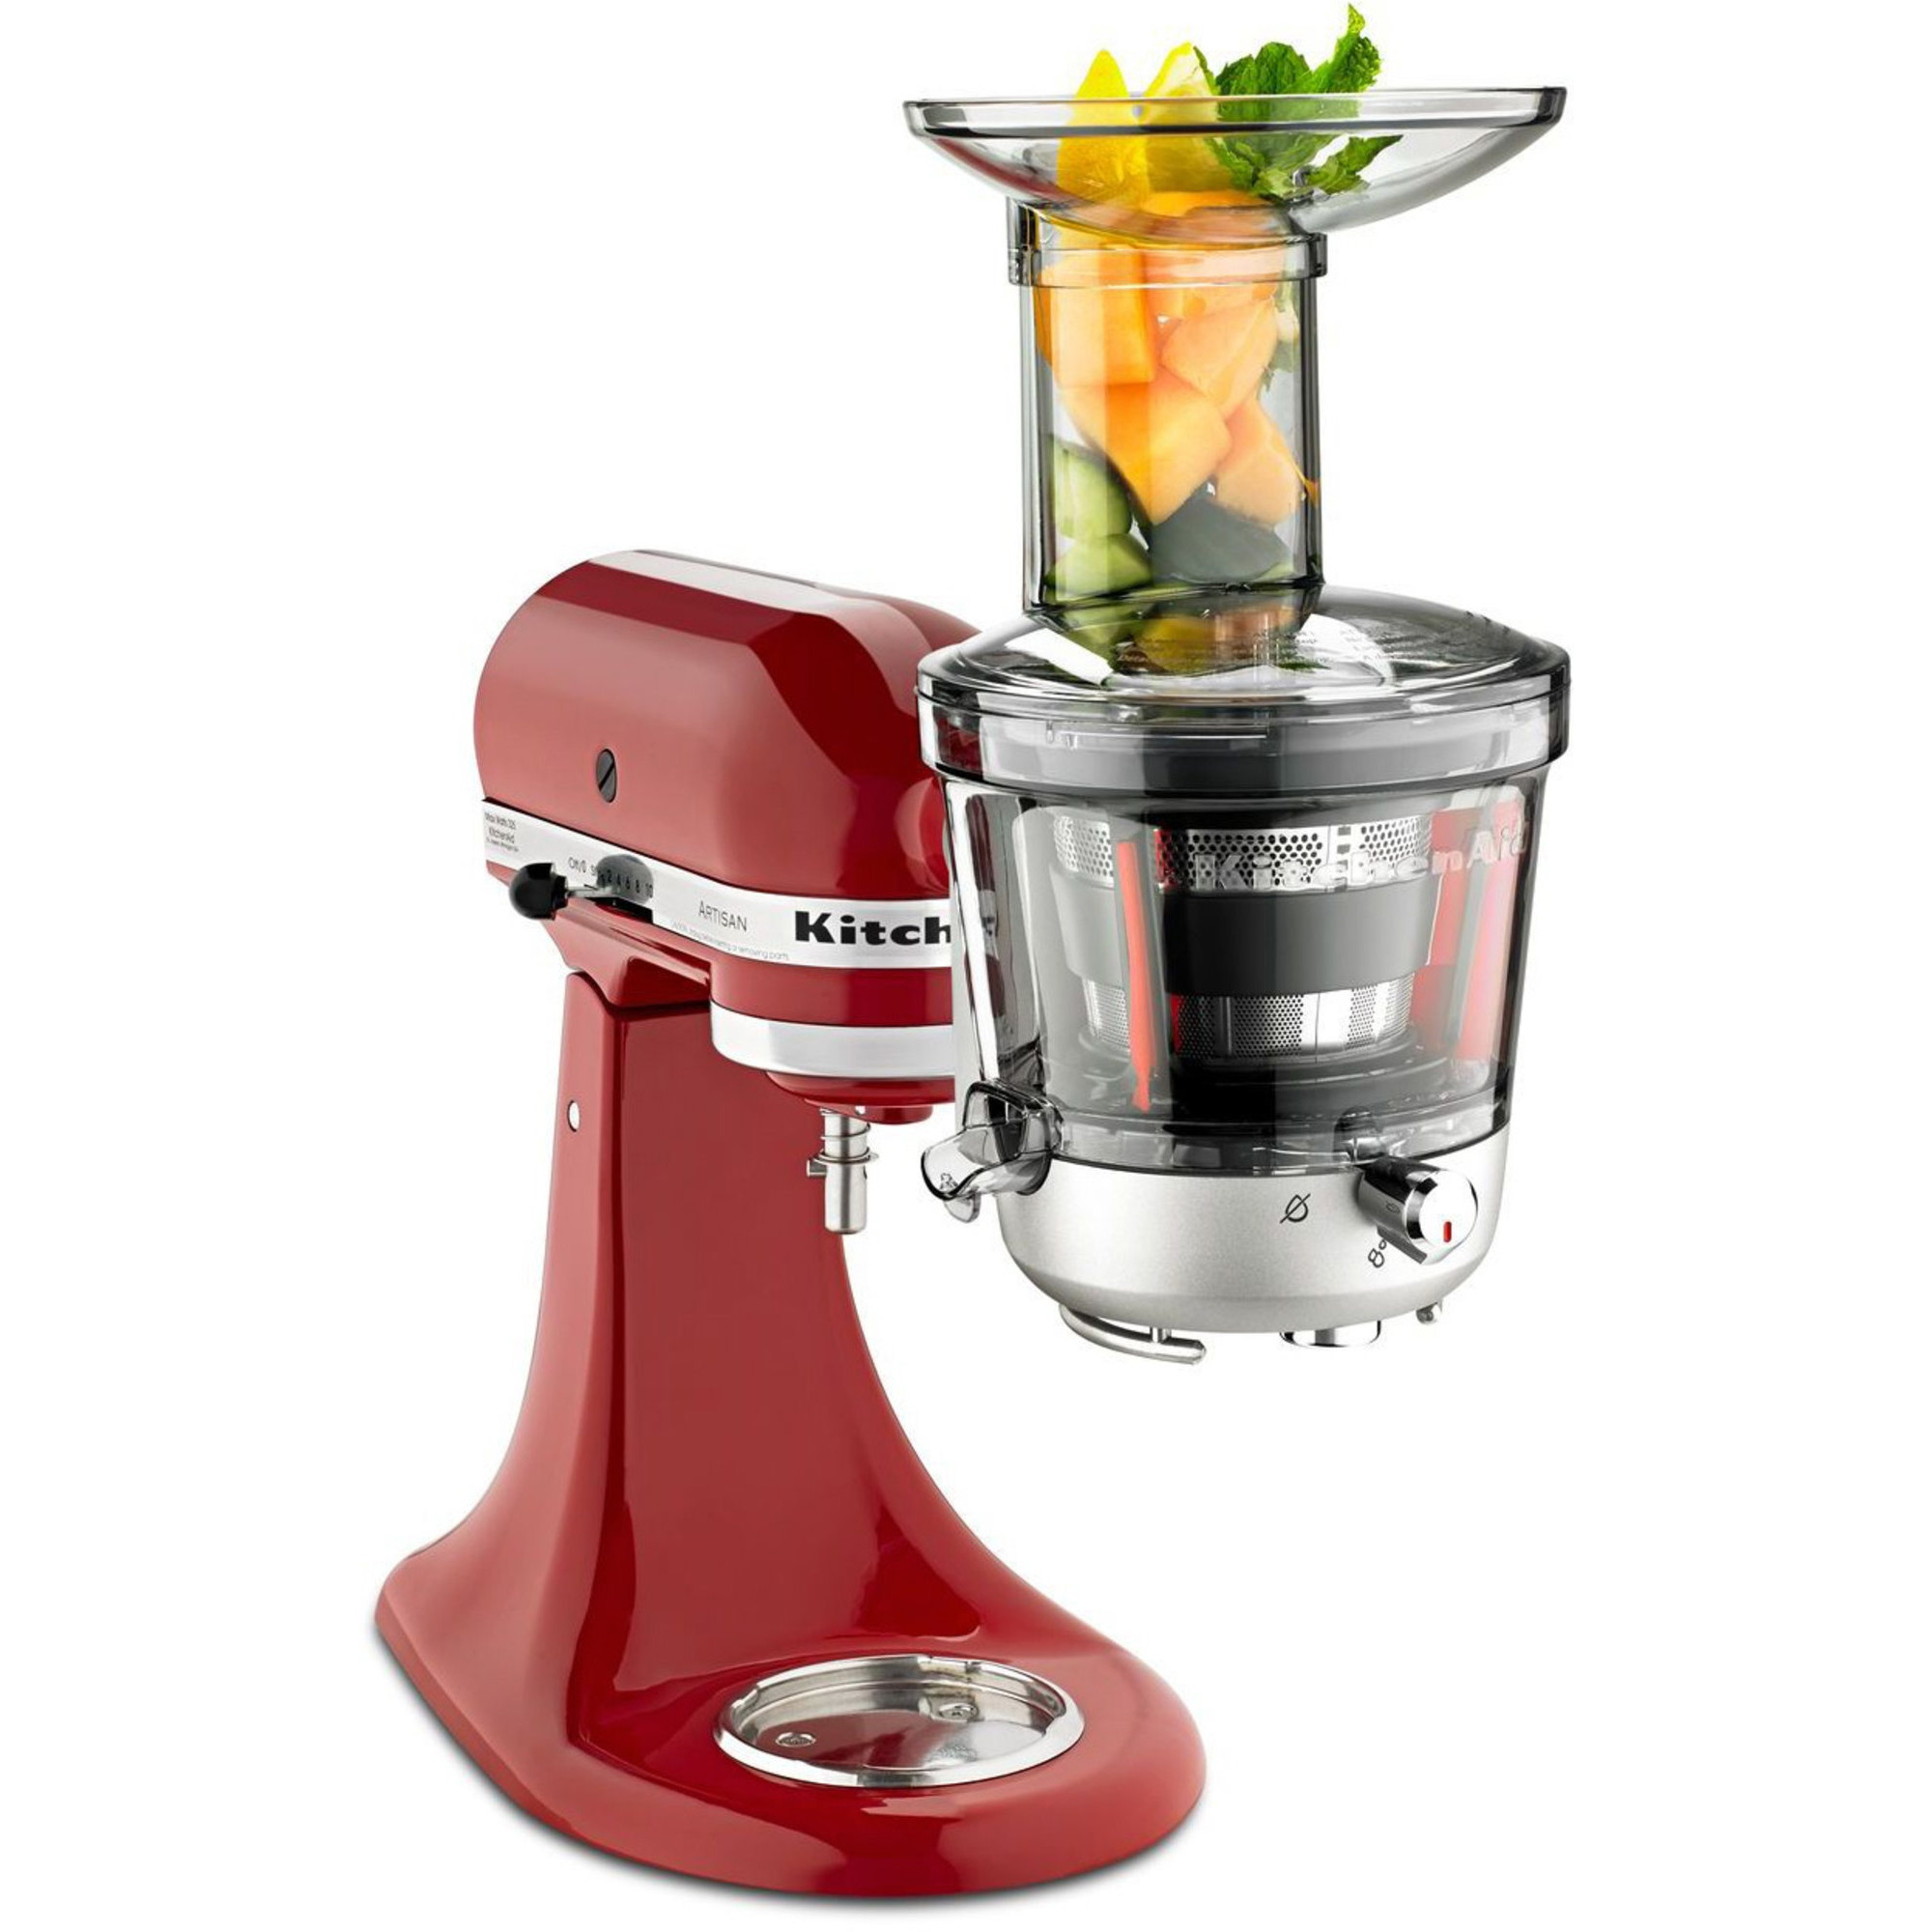 Kitchenaid Slow Juicer Dba : SM1JA Slow Juicer fra KitchenAid Slow Juicer tilbehor til KitchenAid